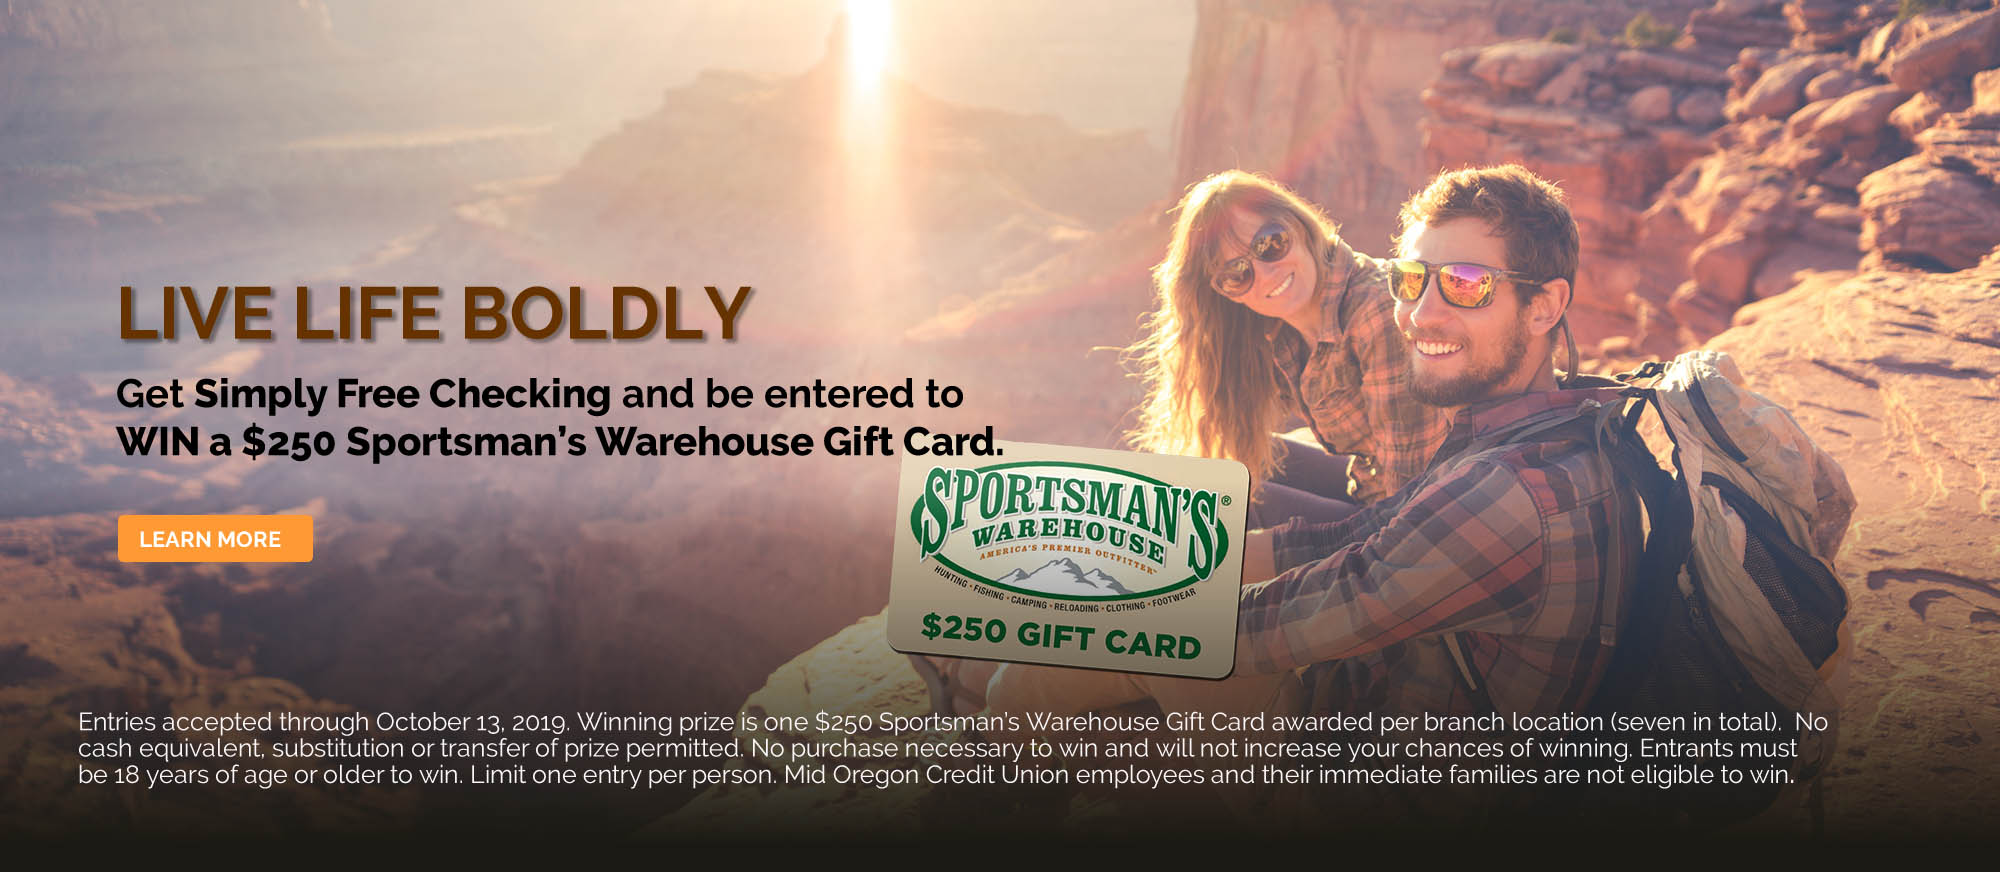 Simply Free Checking Sportsman's Warehouse Gift Card